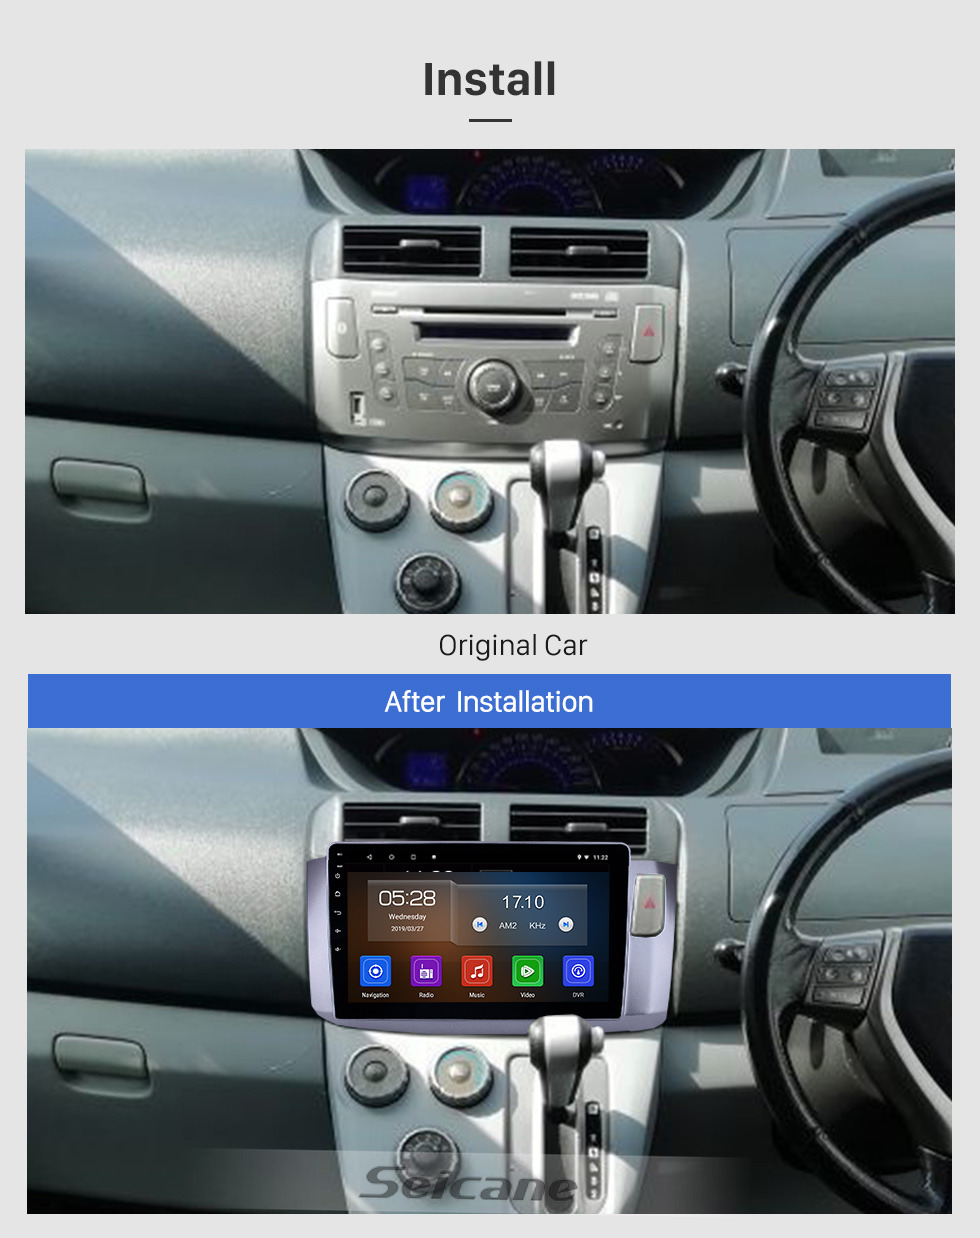 Seicane 10.1 inch Android 9.0 Radio for 2010 Perodua Alza Bluetooth HD Touchscreen GPS Navigation WIFI Carplay USB support TPMS DAB+ OBD2 Digital TV